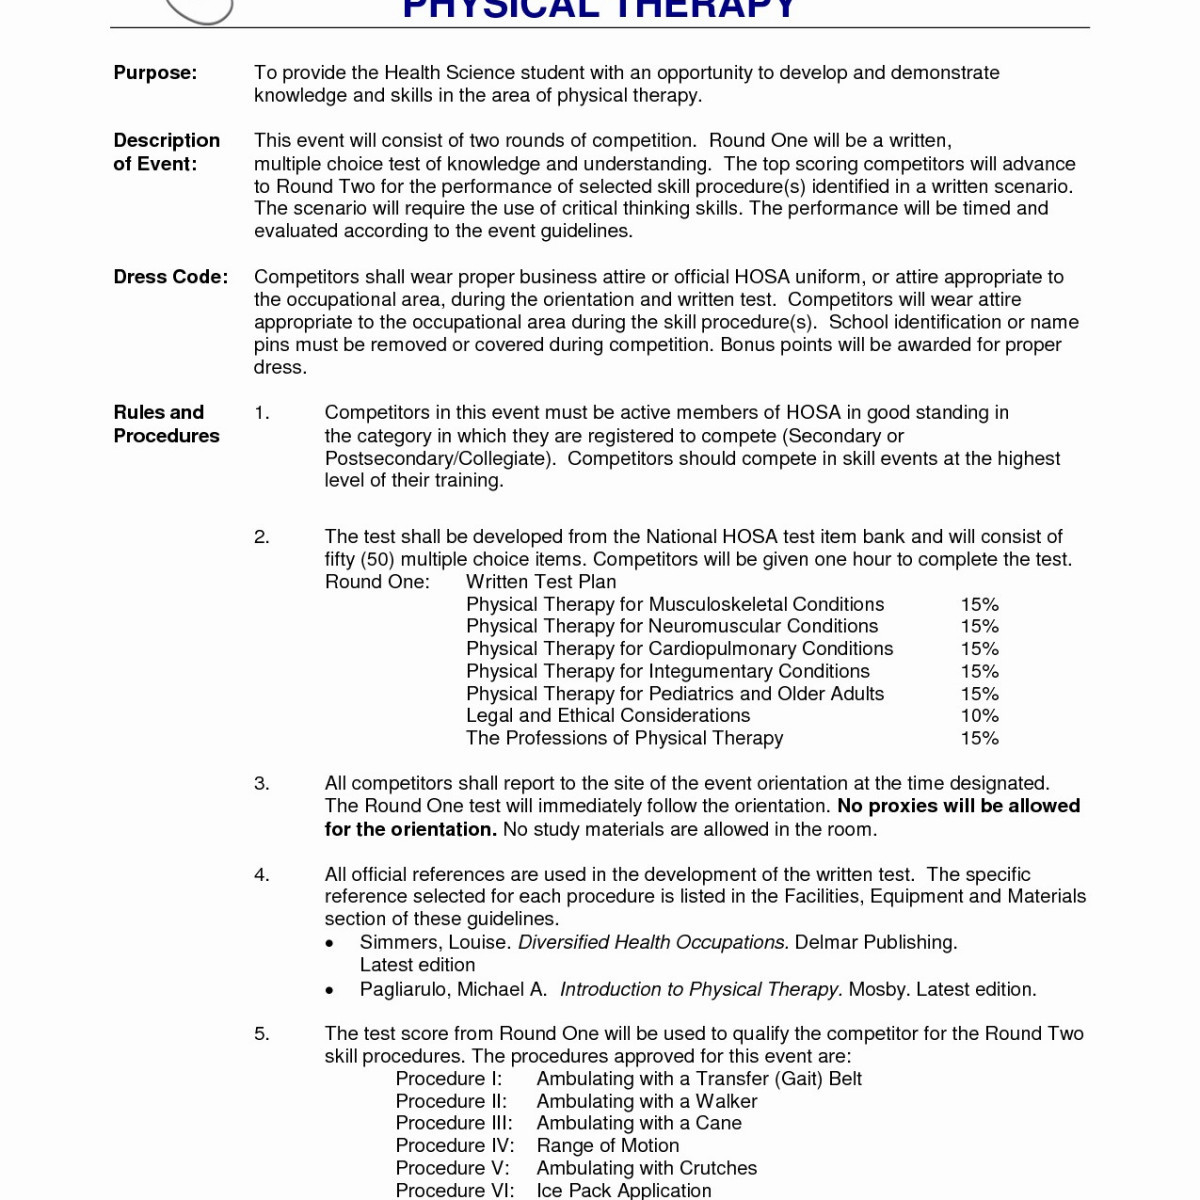 physical therapist resume template example-Resume Examples for Physical therapist at Resume Sample Ideas from Sample Physical Therapy Resume source cheapjordanretros 9-f